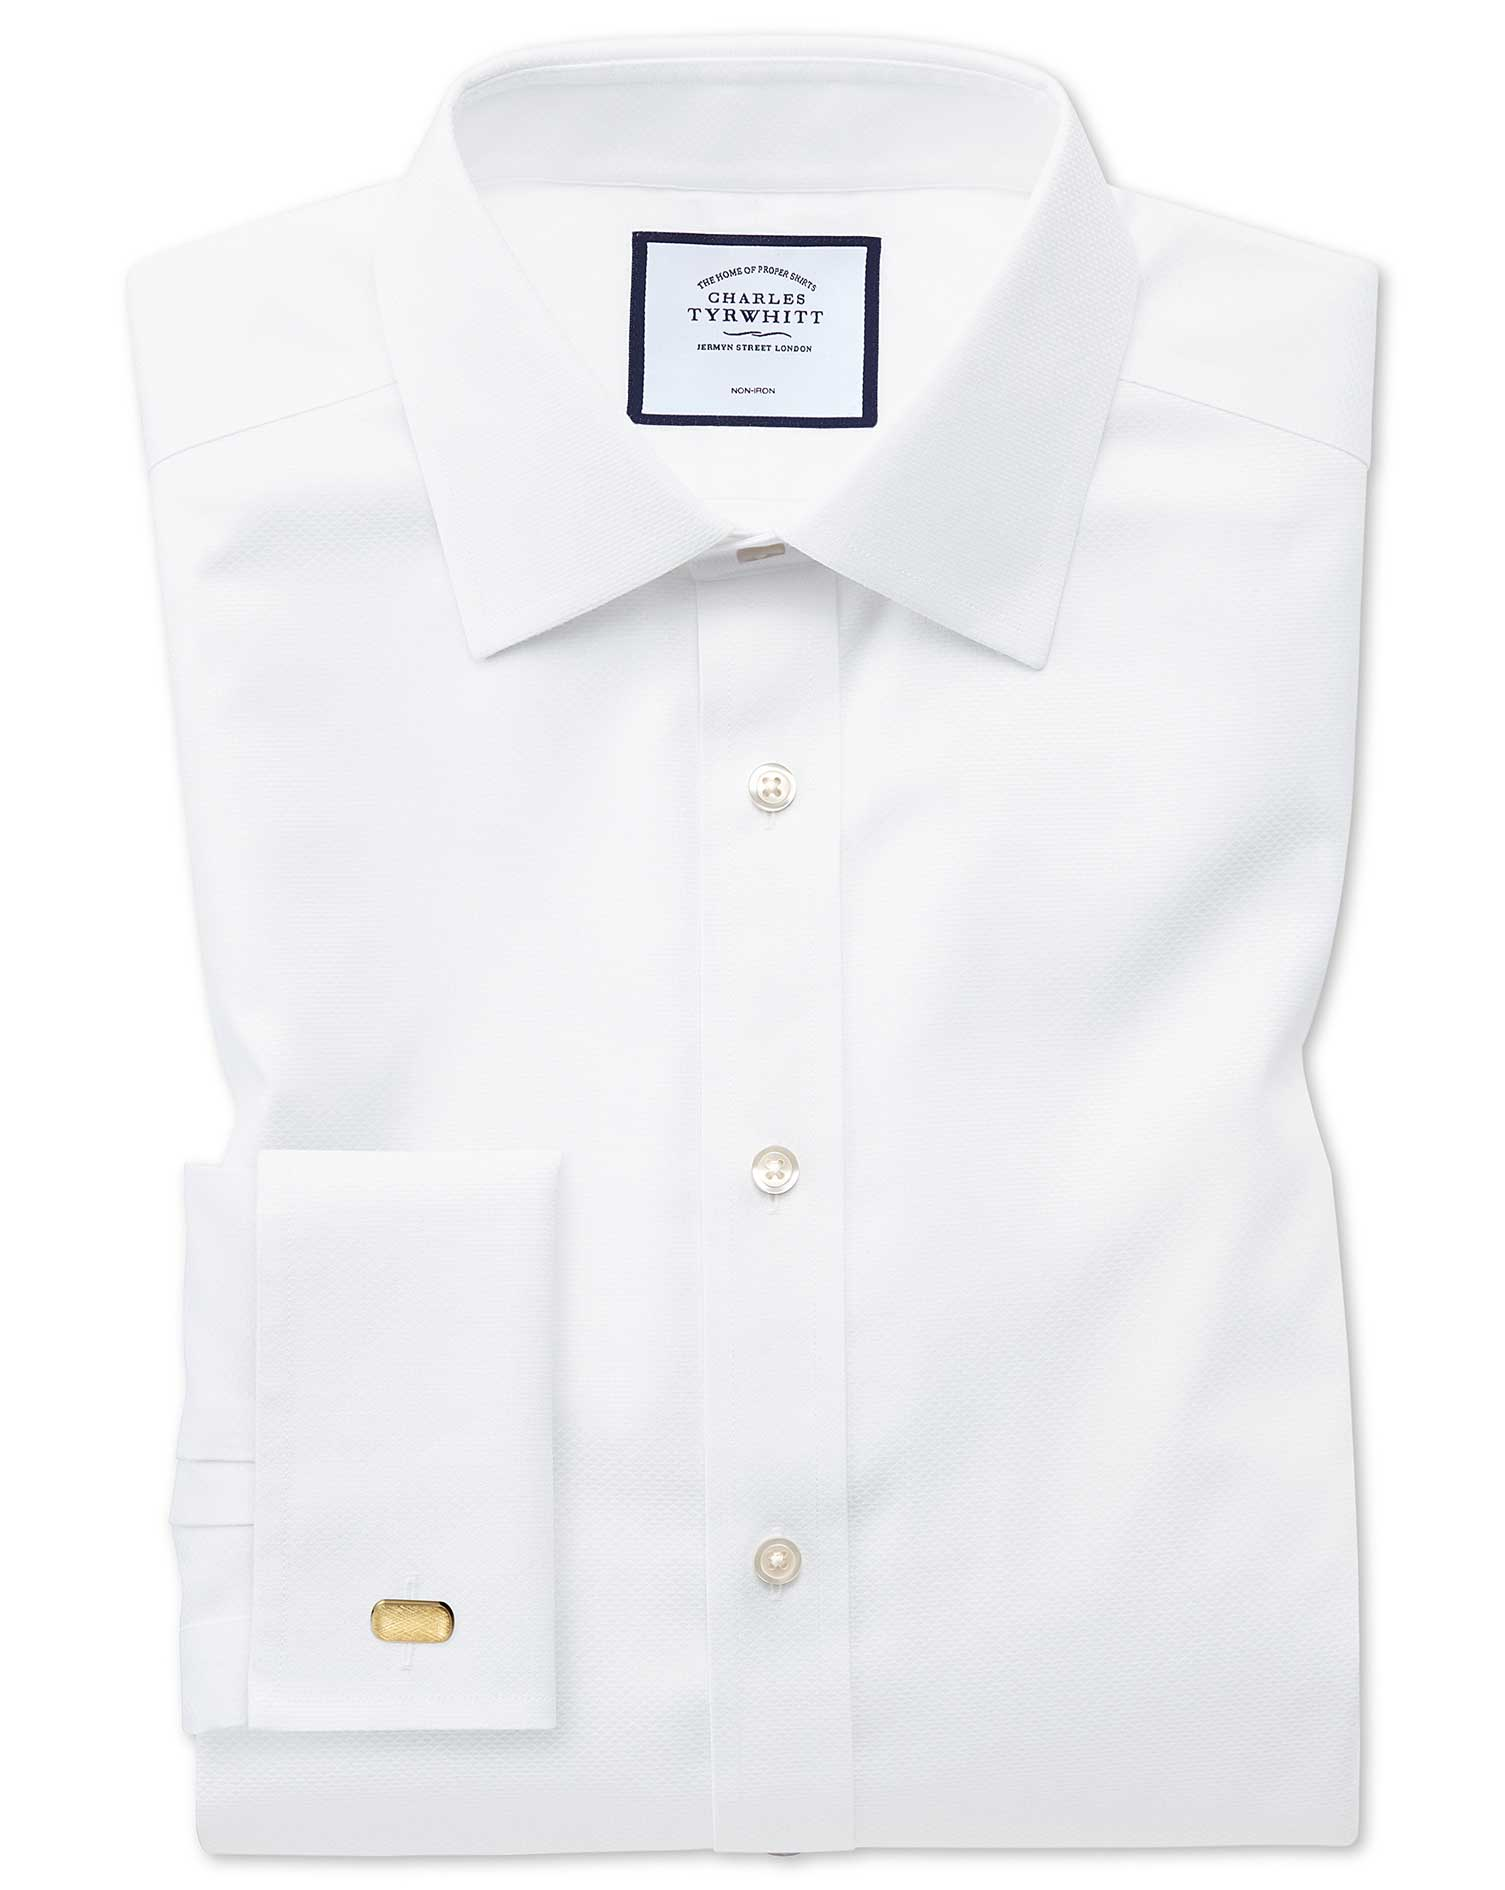 Extra Slim Fit Non-Iron White Triangle Weave Cotton Formal Shirt Double Cuff Size 15.5/34 by Charles